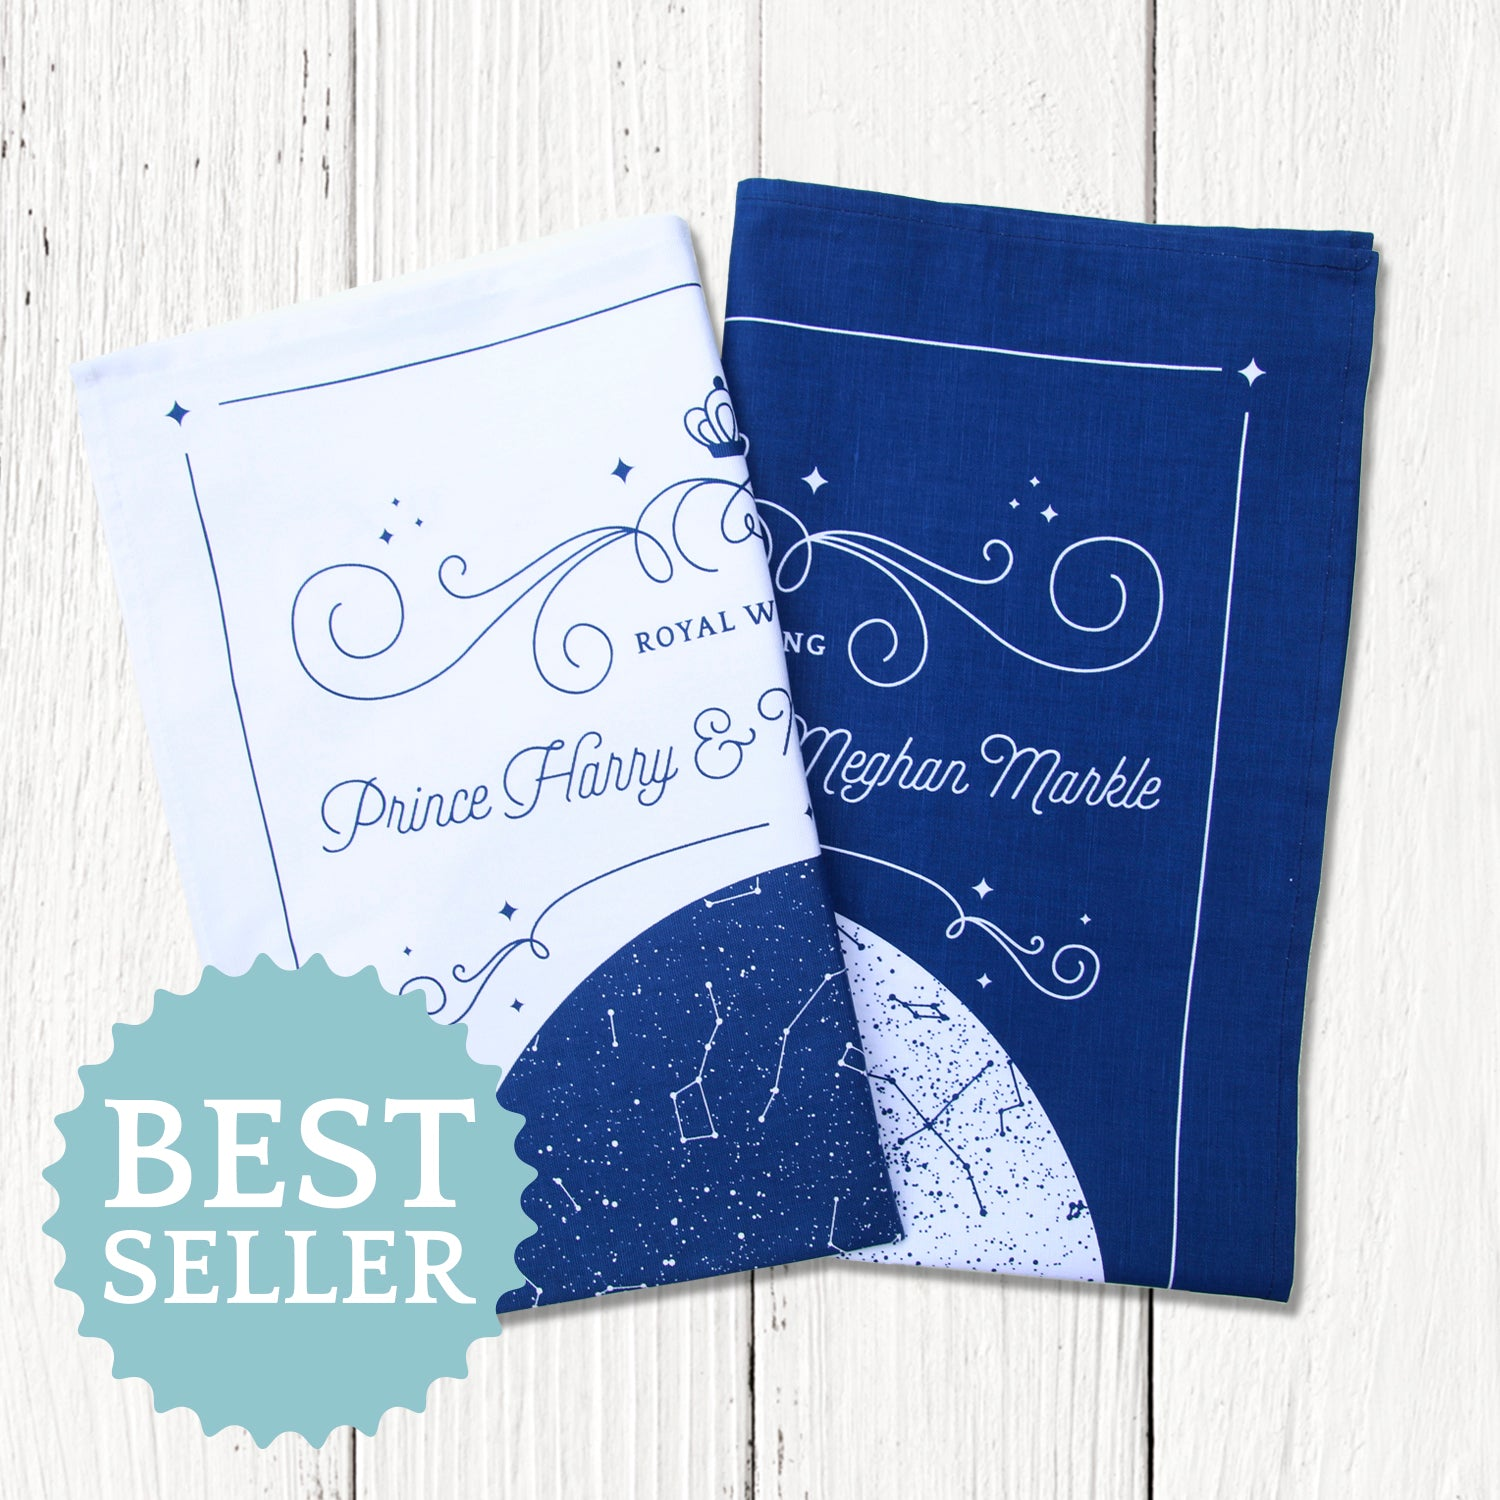 The stars over the Royal Wedding - Set of 2 coordinated tea towels